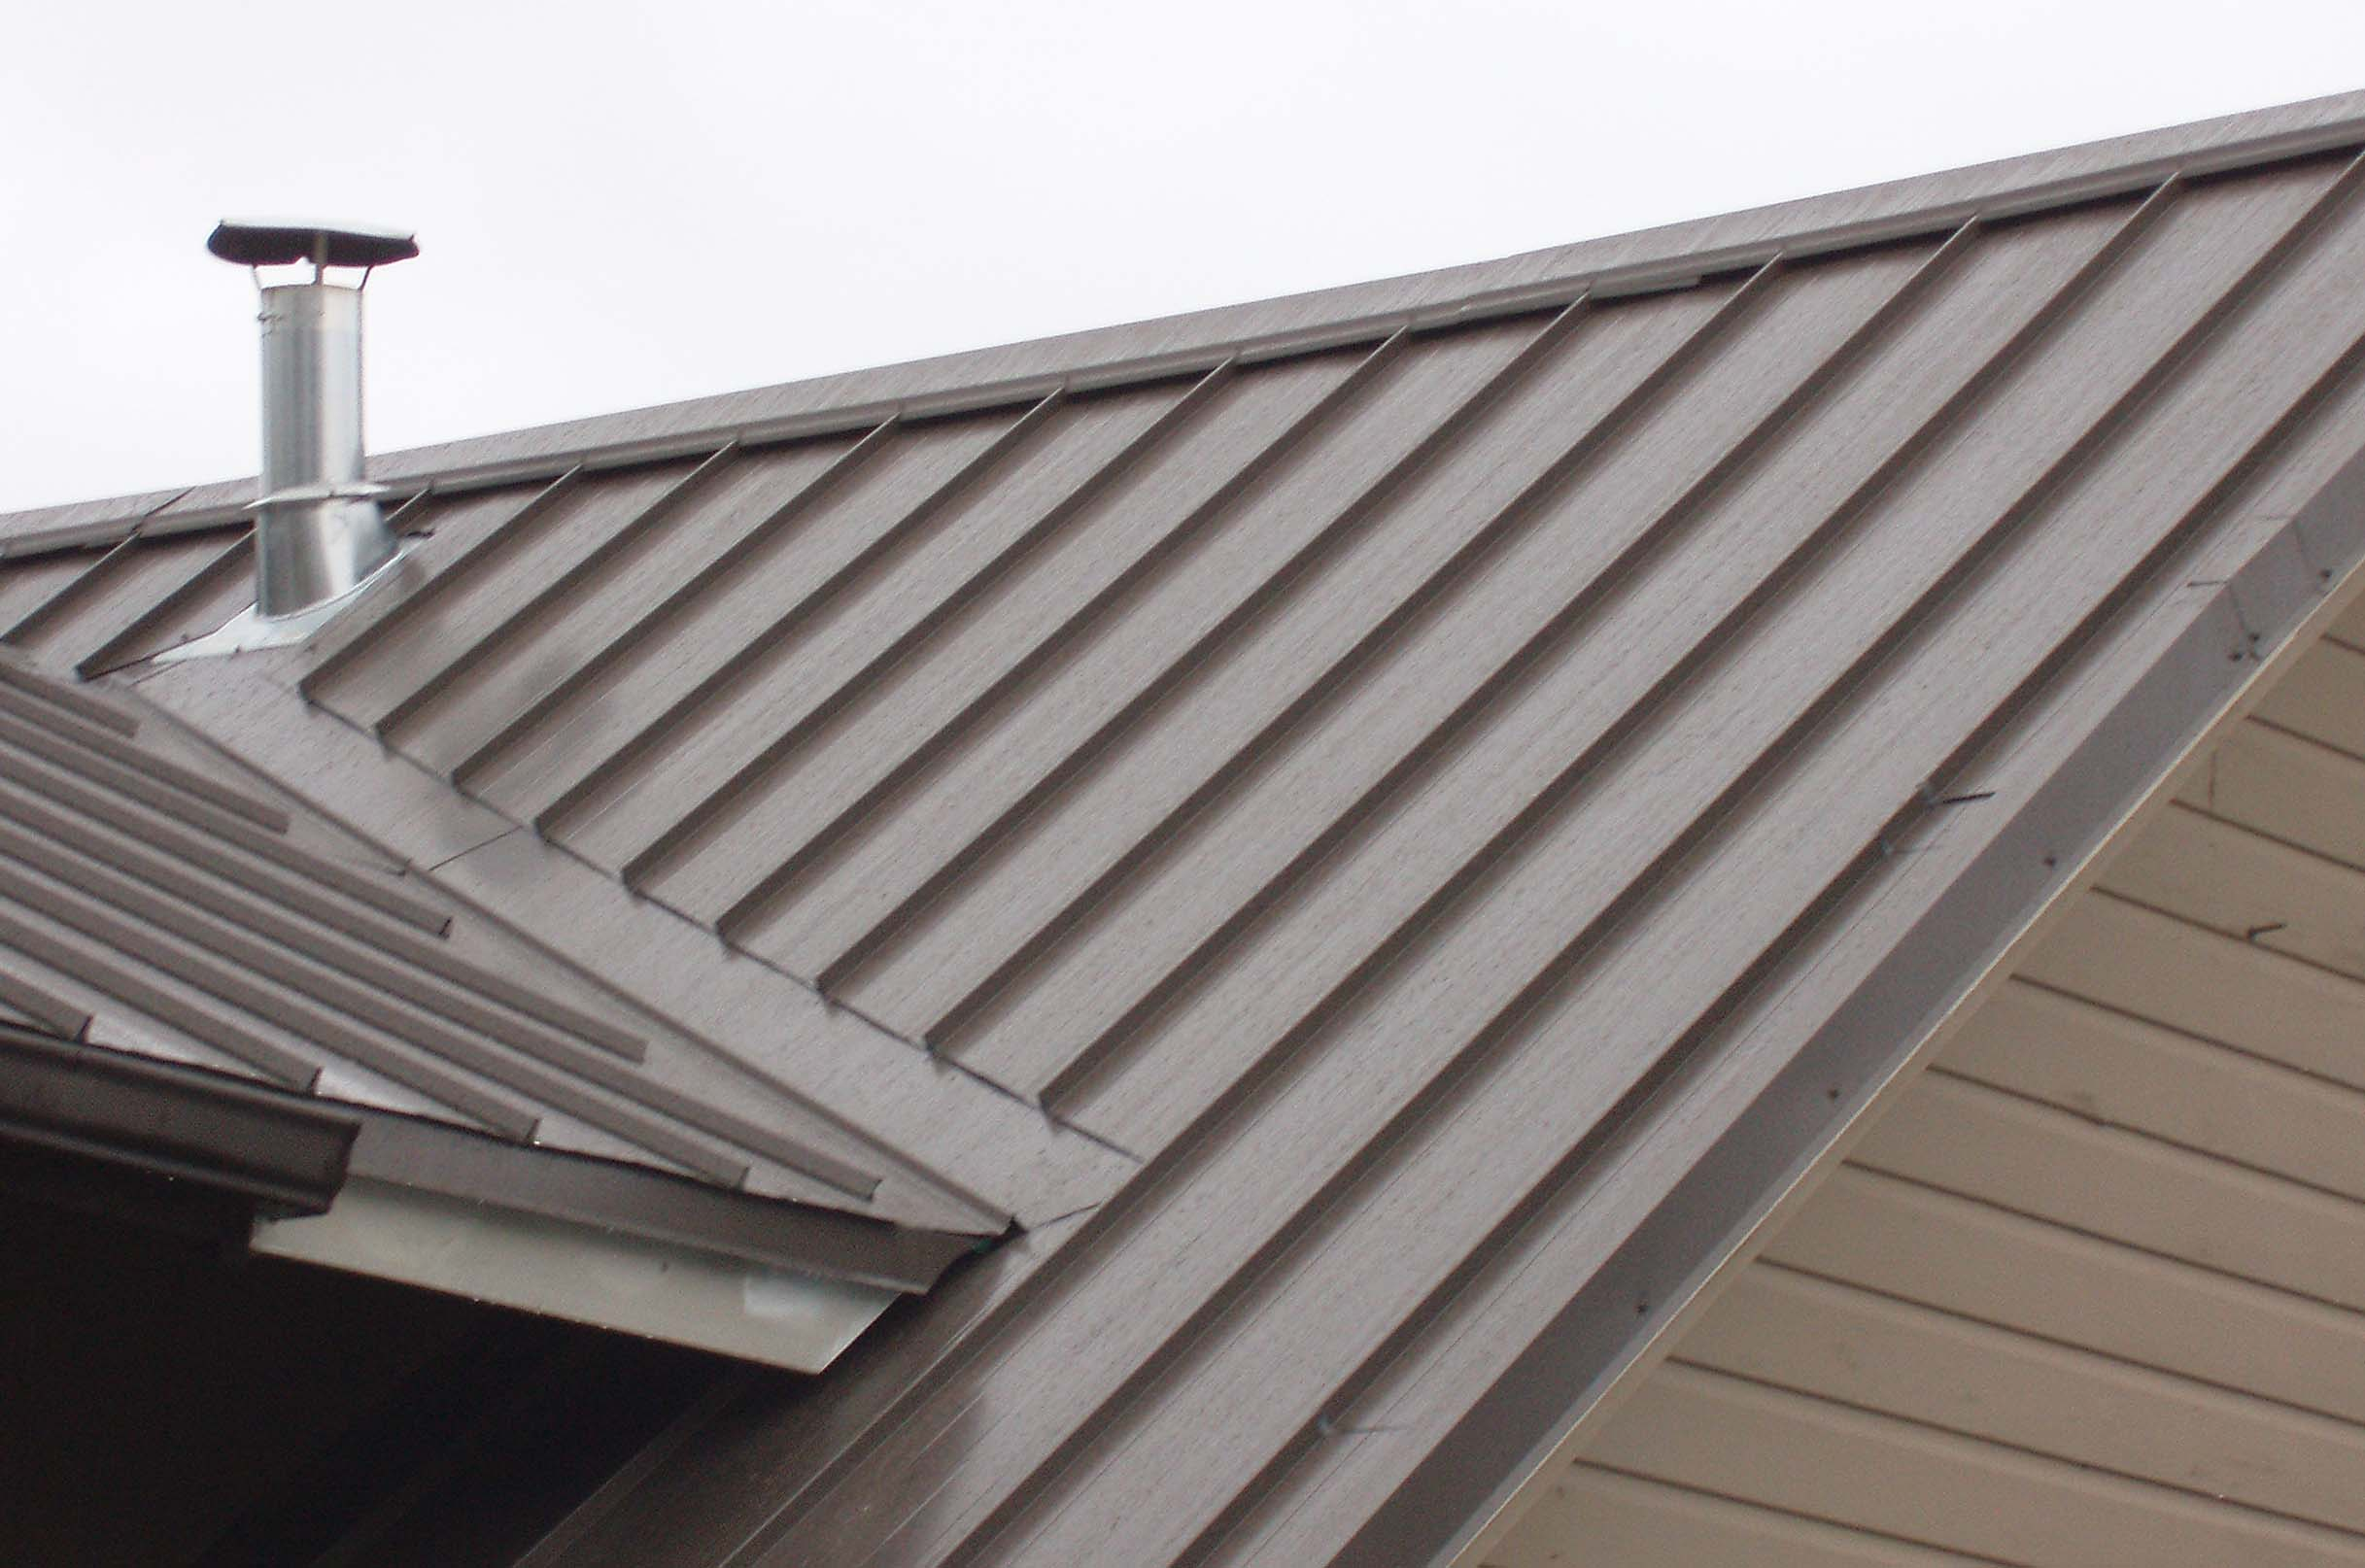 Metal Roofing | IRONGATE ROOFING | Rockwall Roofing ...  Metal Roofing |...